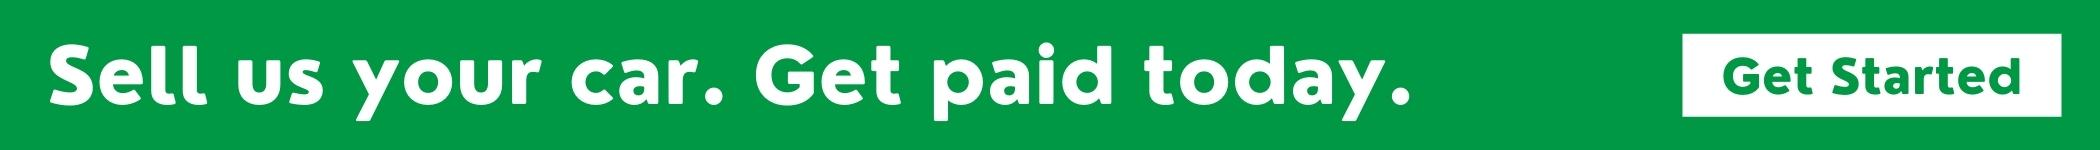 Sell Us Your Car. Get Paid Today.